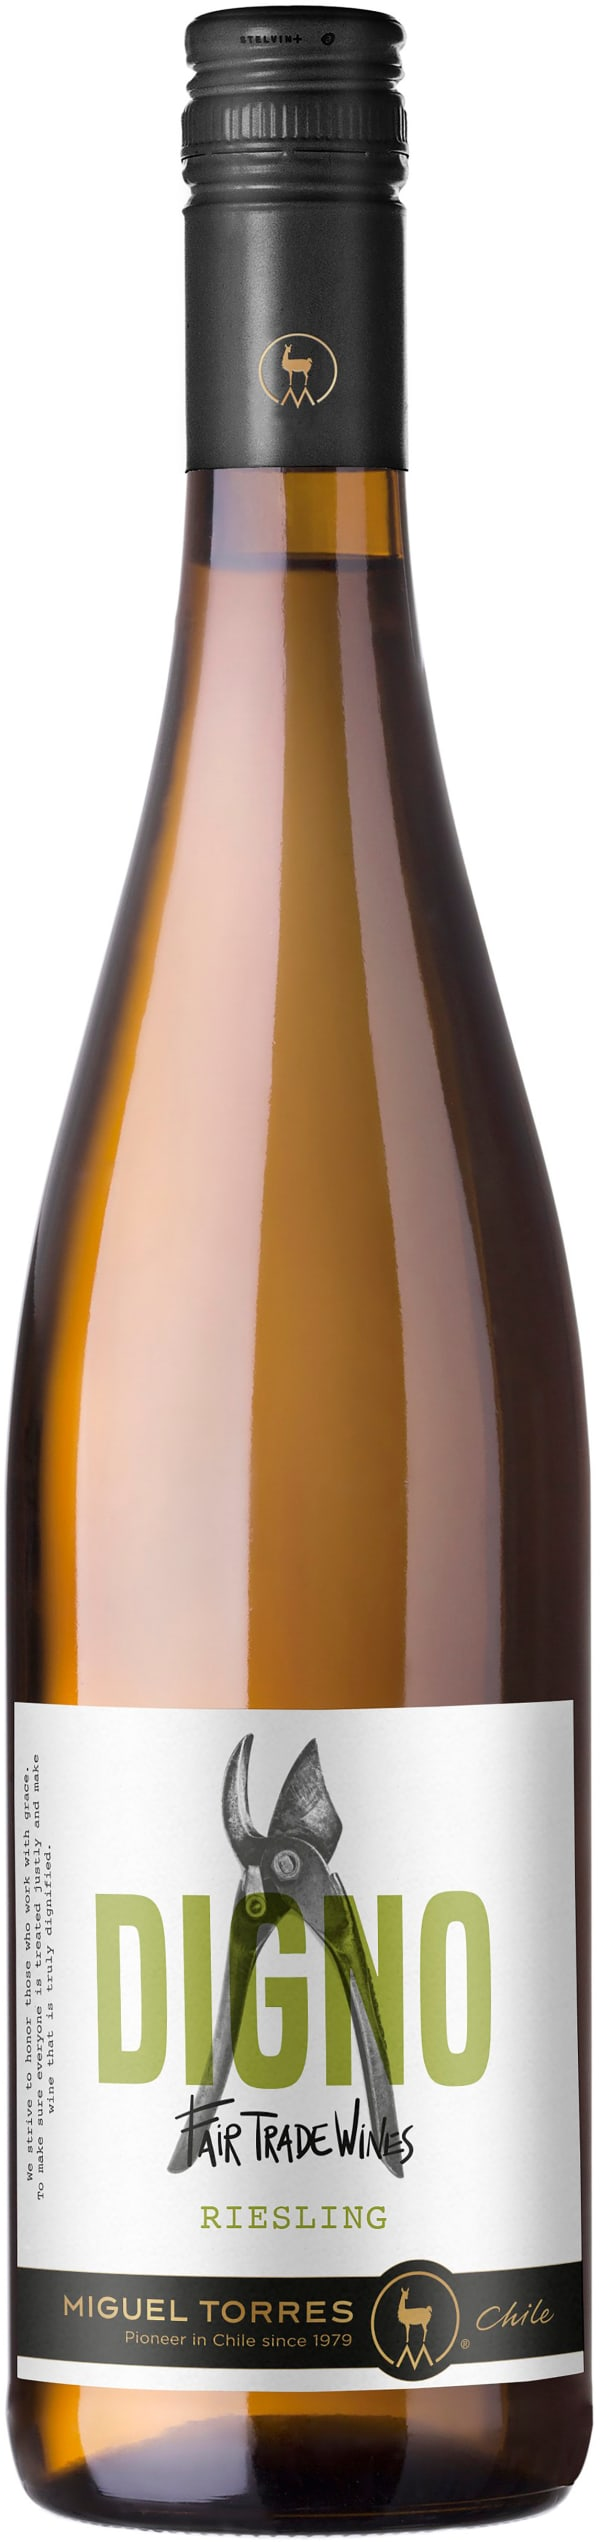 Torres Digno Riesling 2017